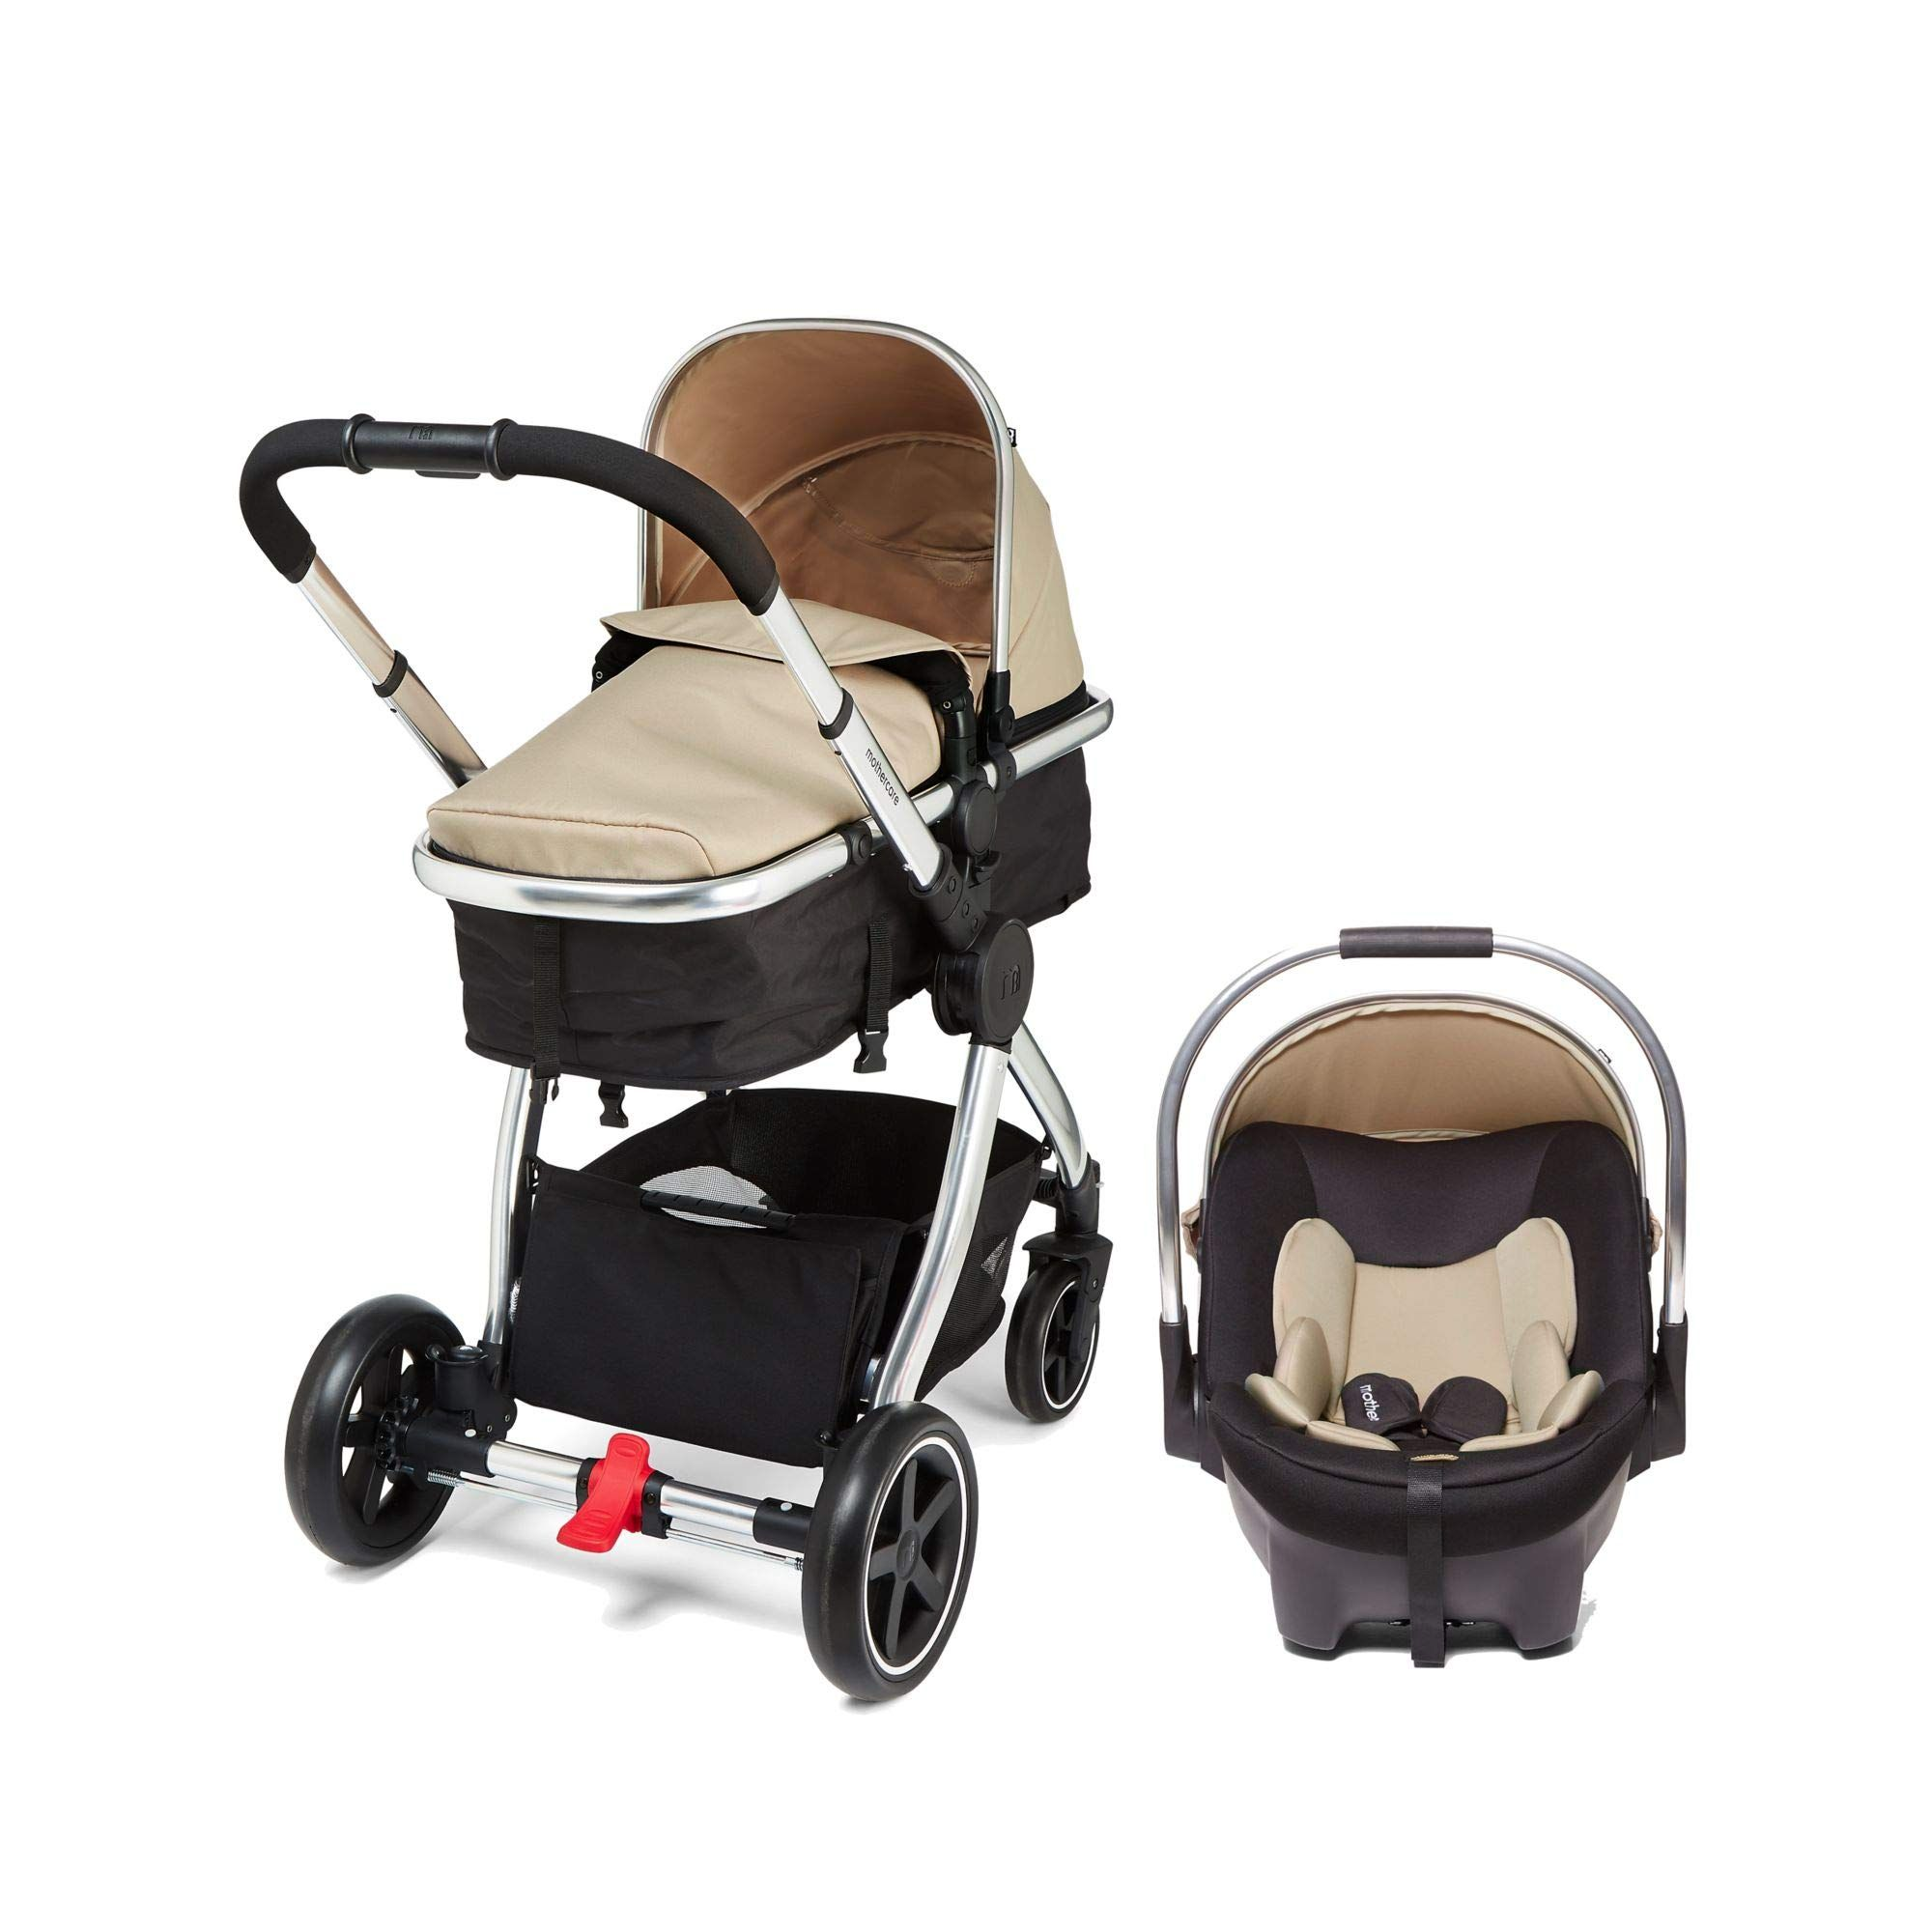 Shop Mothercare stroller, Mothercare prams, Travel system